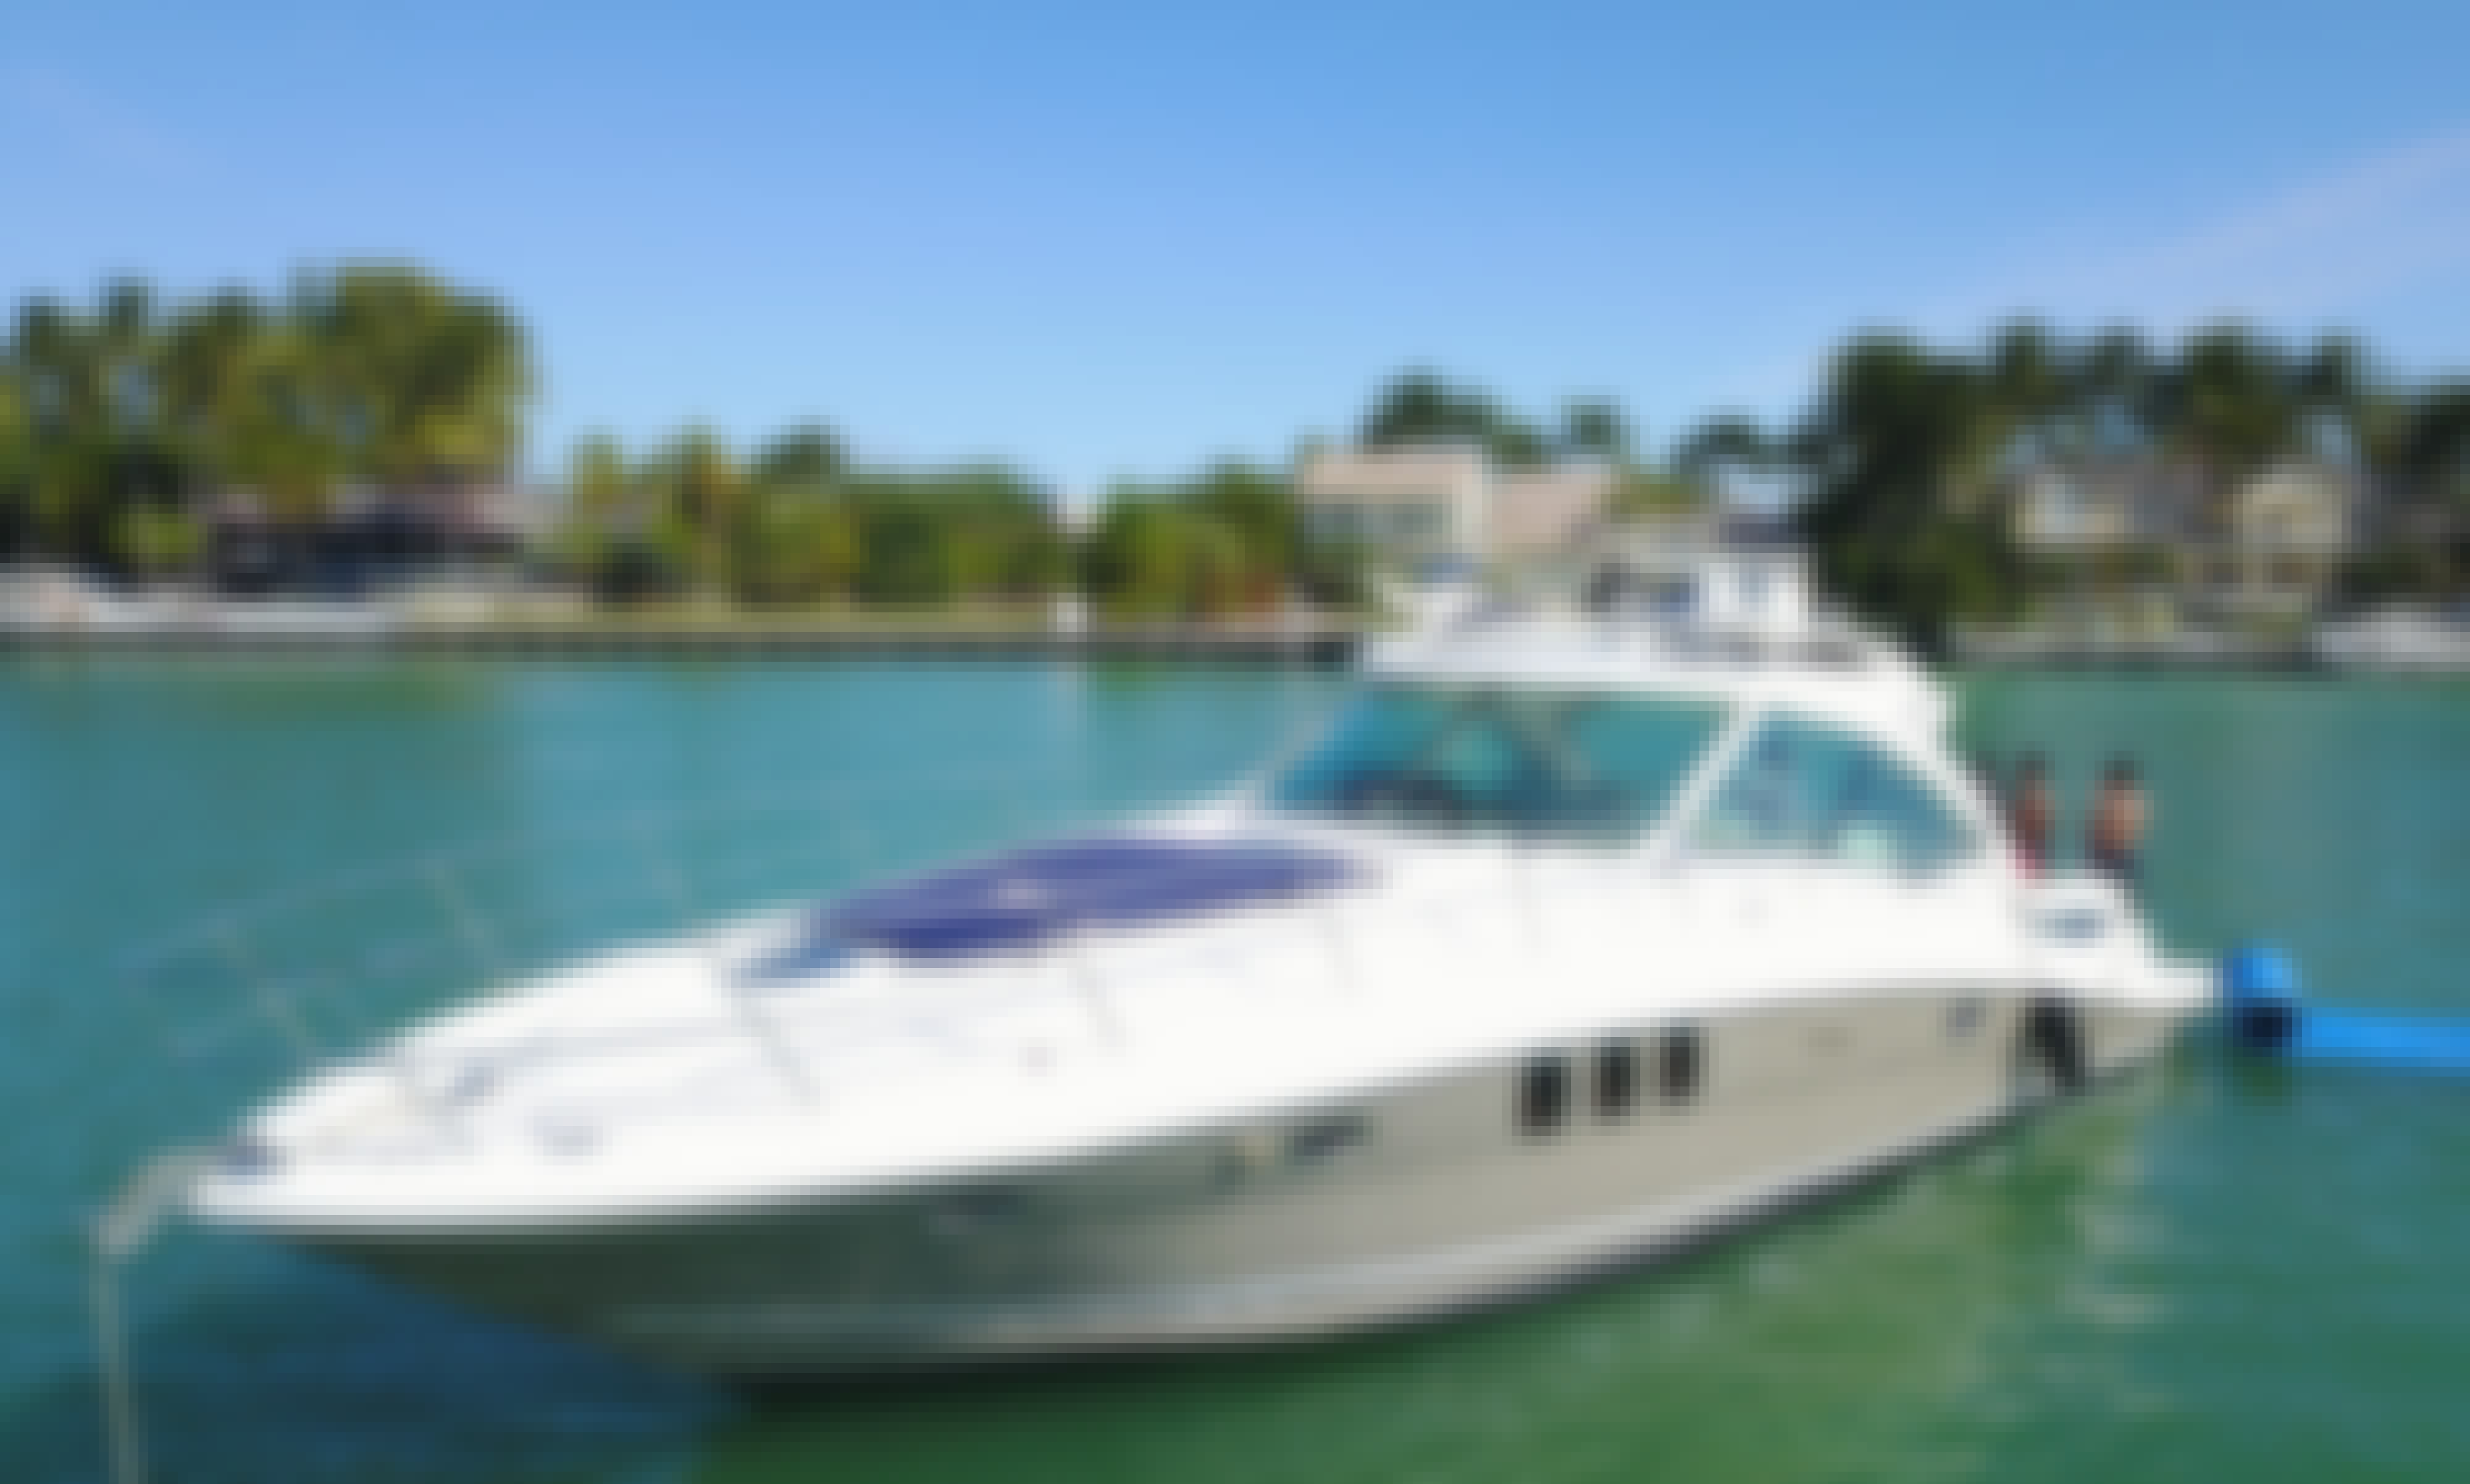 Amazing 50 foot Sea Ray Sundancer Motor Yacht $1,600 for 4hrs rental up to 12 guests AS Low AS $ 333 per hr - water toys: water carpet, Paddle board, floating noodles, snorkeling goggles! Well maintained yacht!